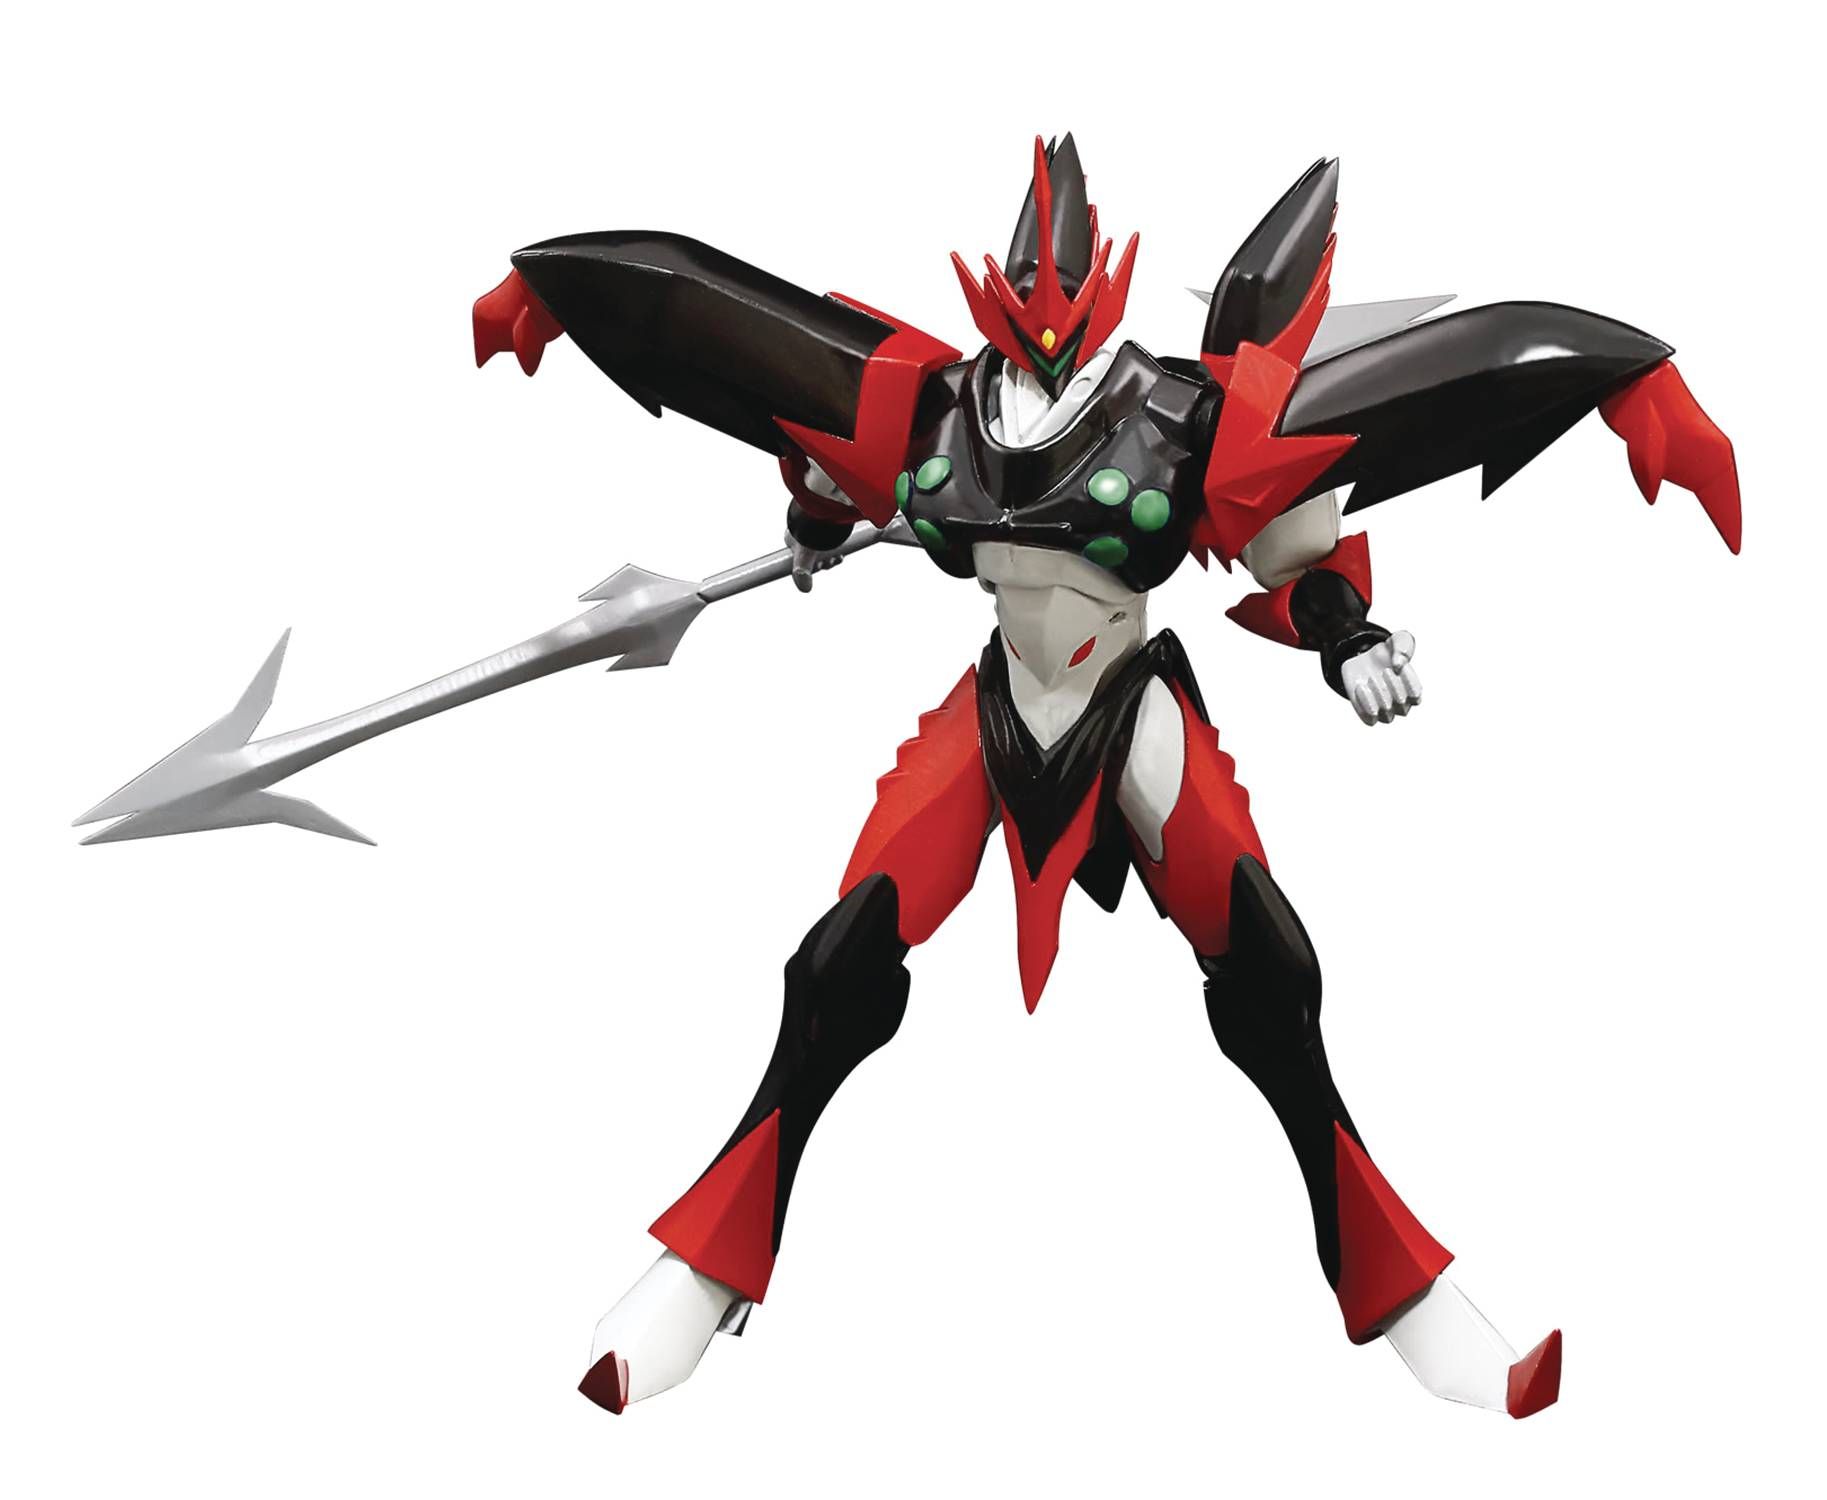 TEKKAMAN THE SPACE KNIGHT TEKKAMAN EVIL AF